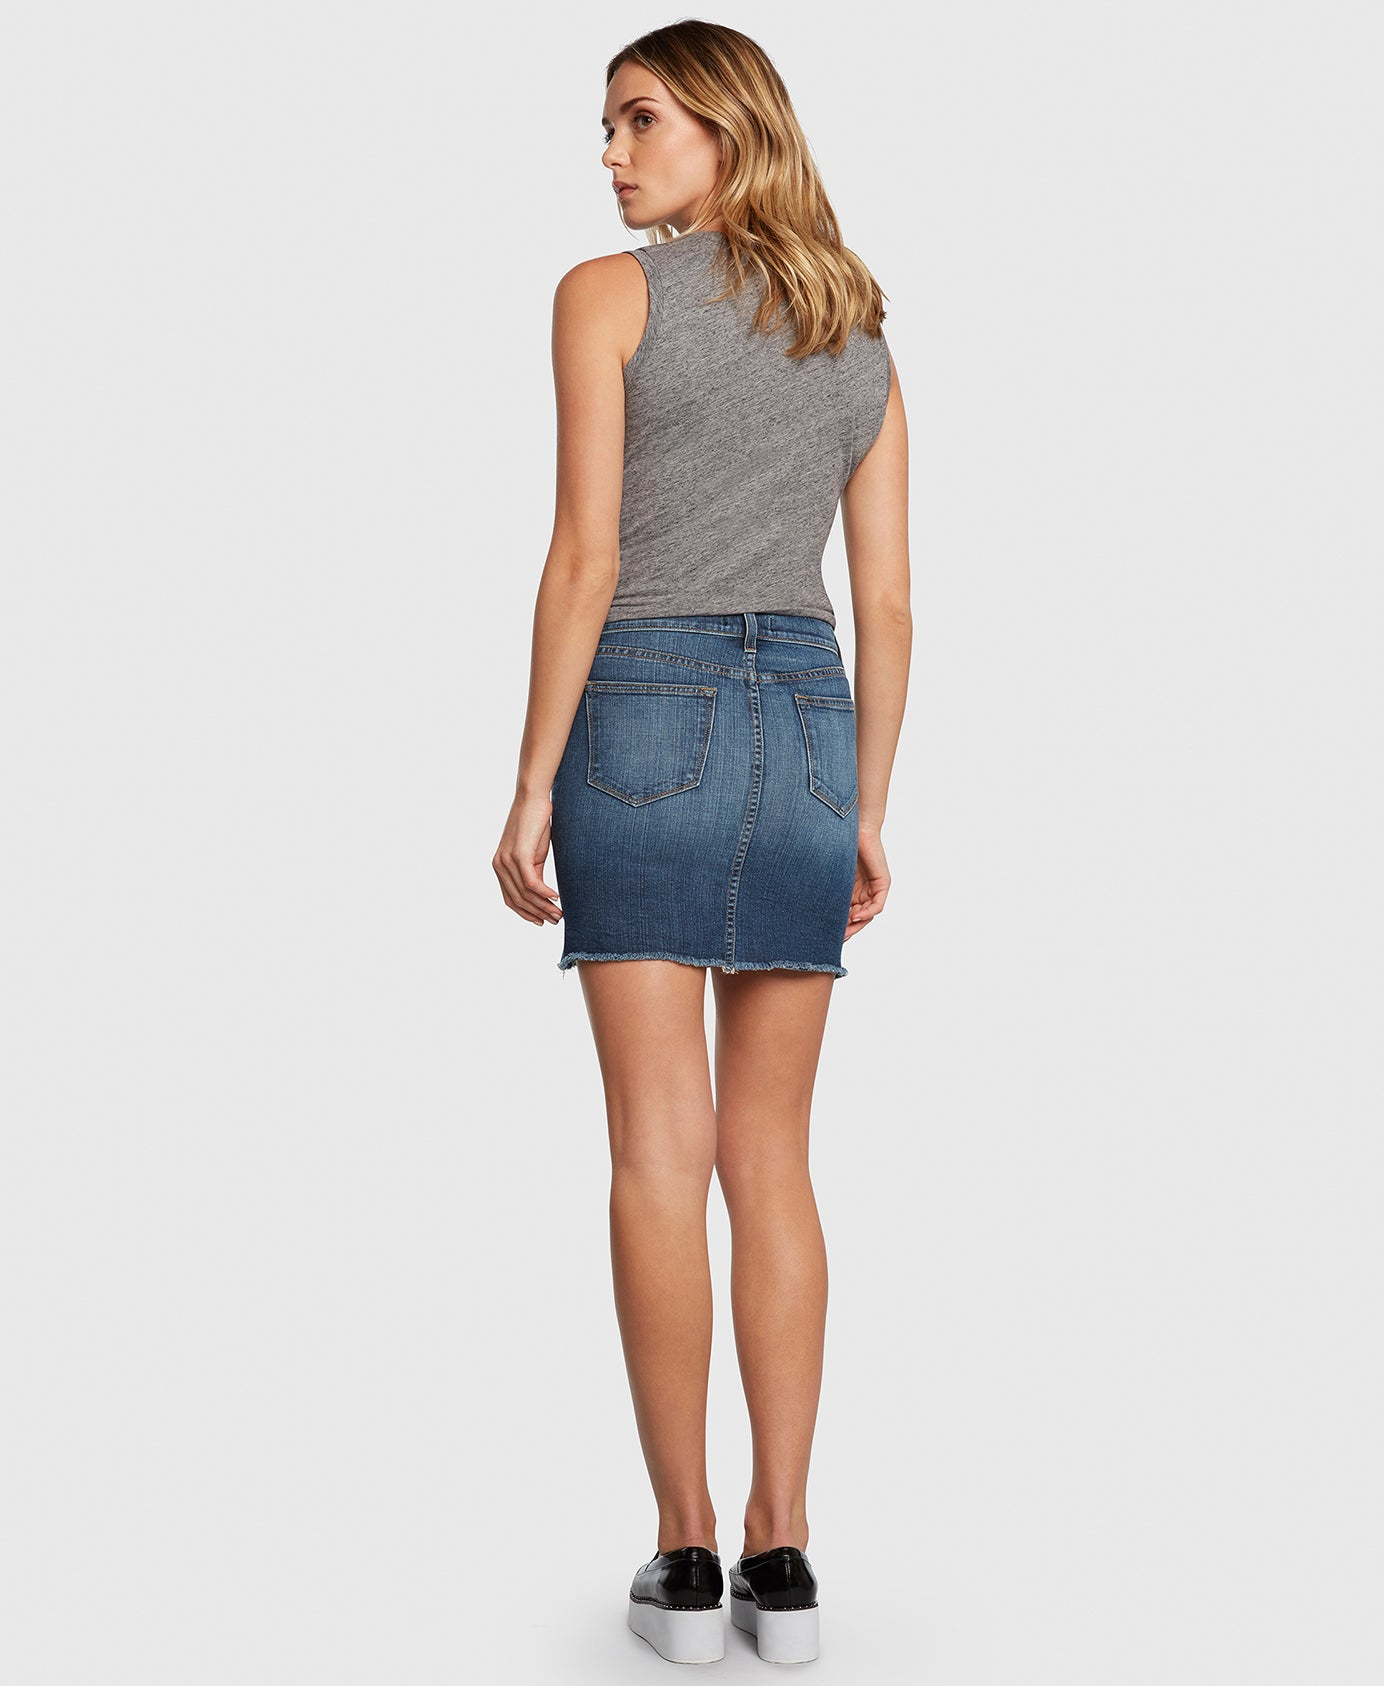 Principle CHARMER in Bad Romance denim skirt back